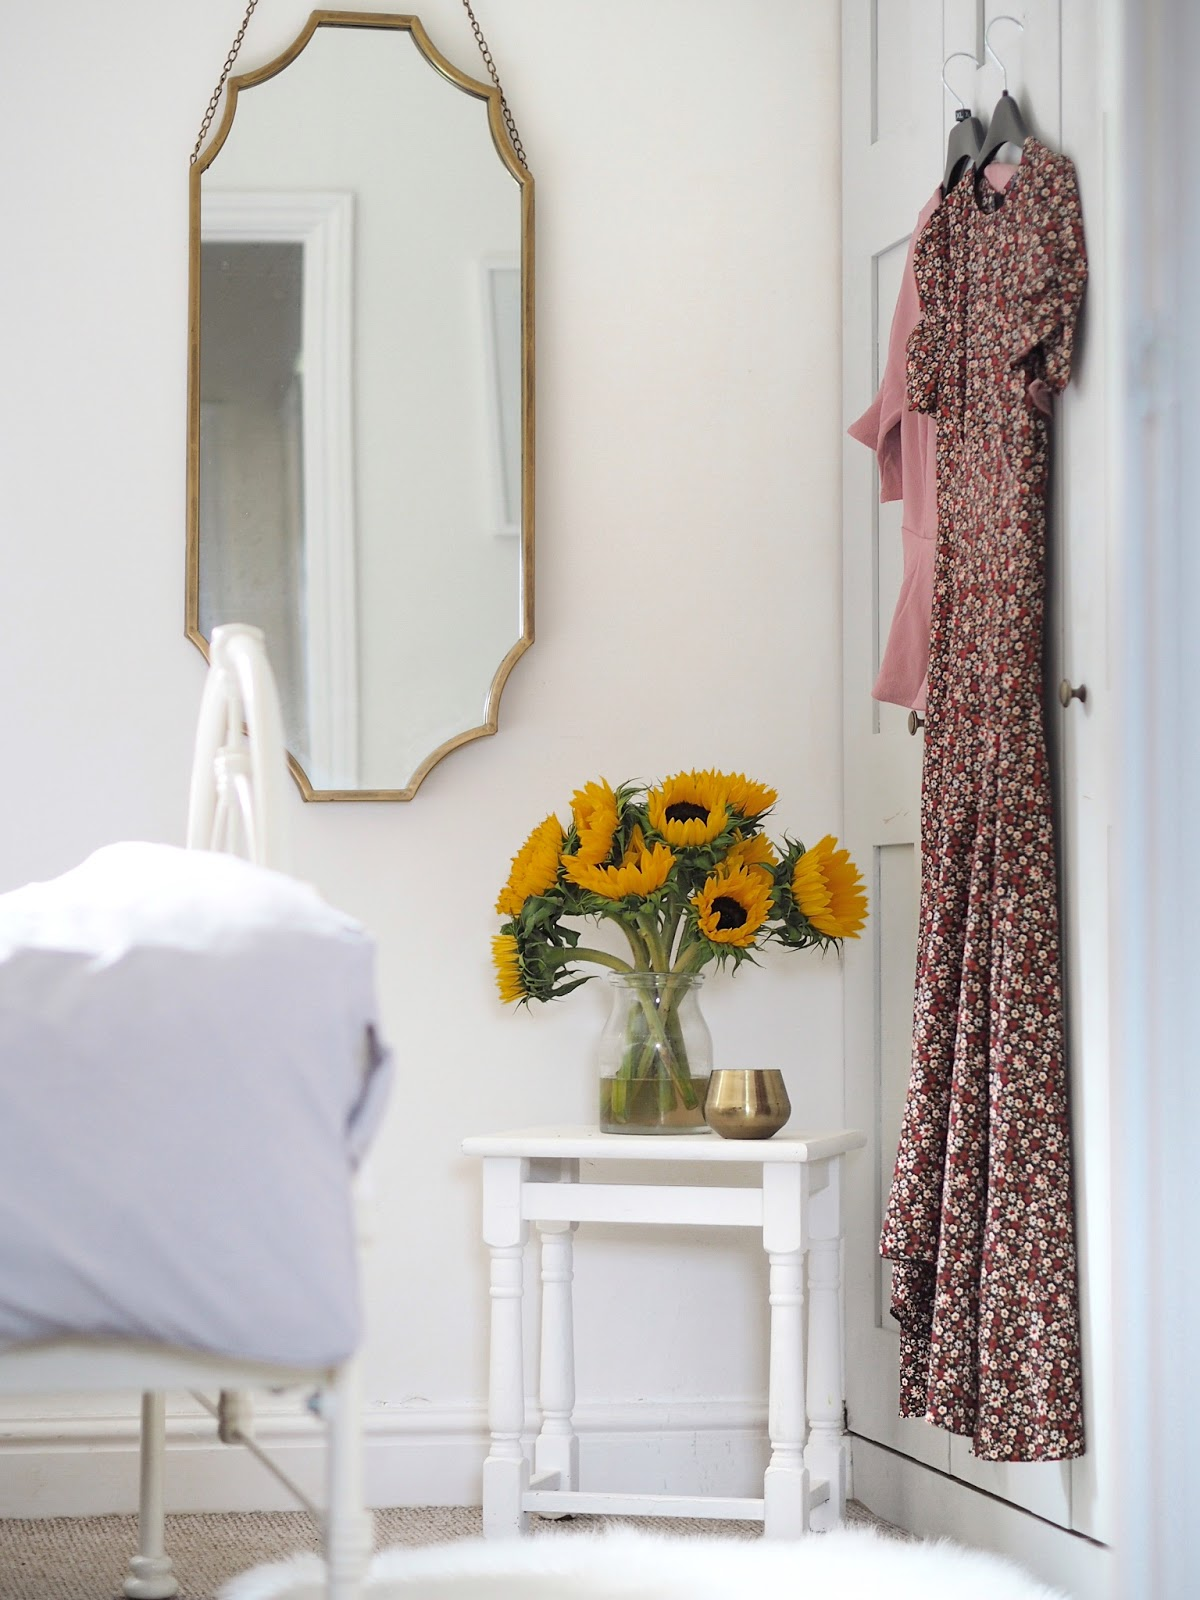 easy ways to declutter and spring clean your home, and save space in small houses. Use clever hidden storage, have regular spring cleans and get rid of anything you haven't worn in a year. Home organisation tips and ways to make spring cleaning and keeping your home tidy.